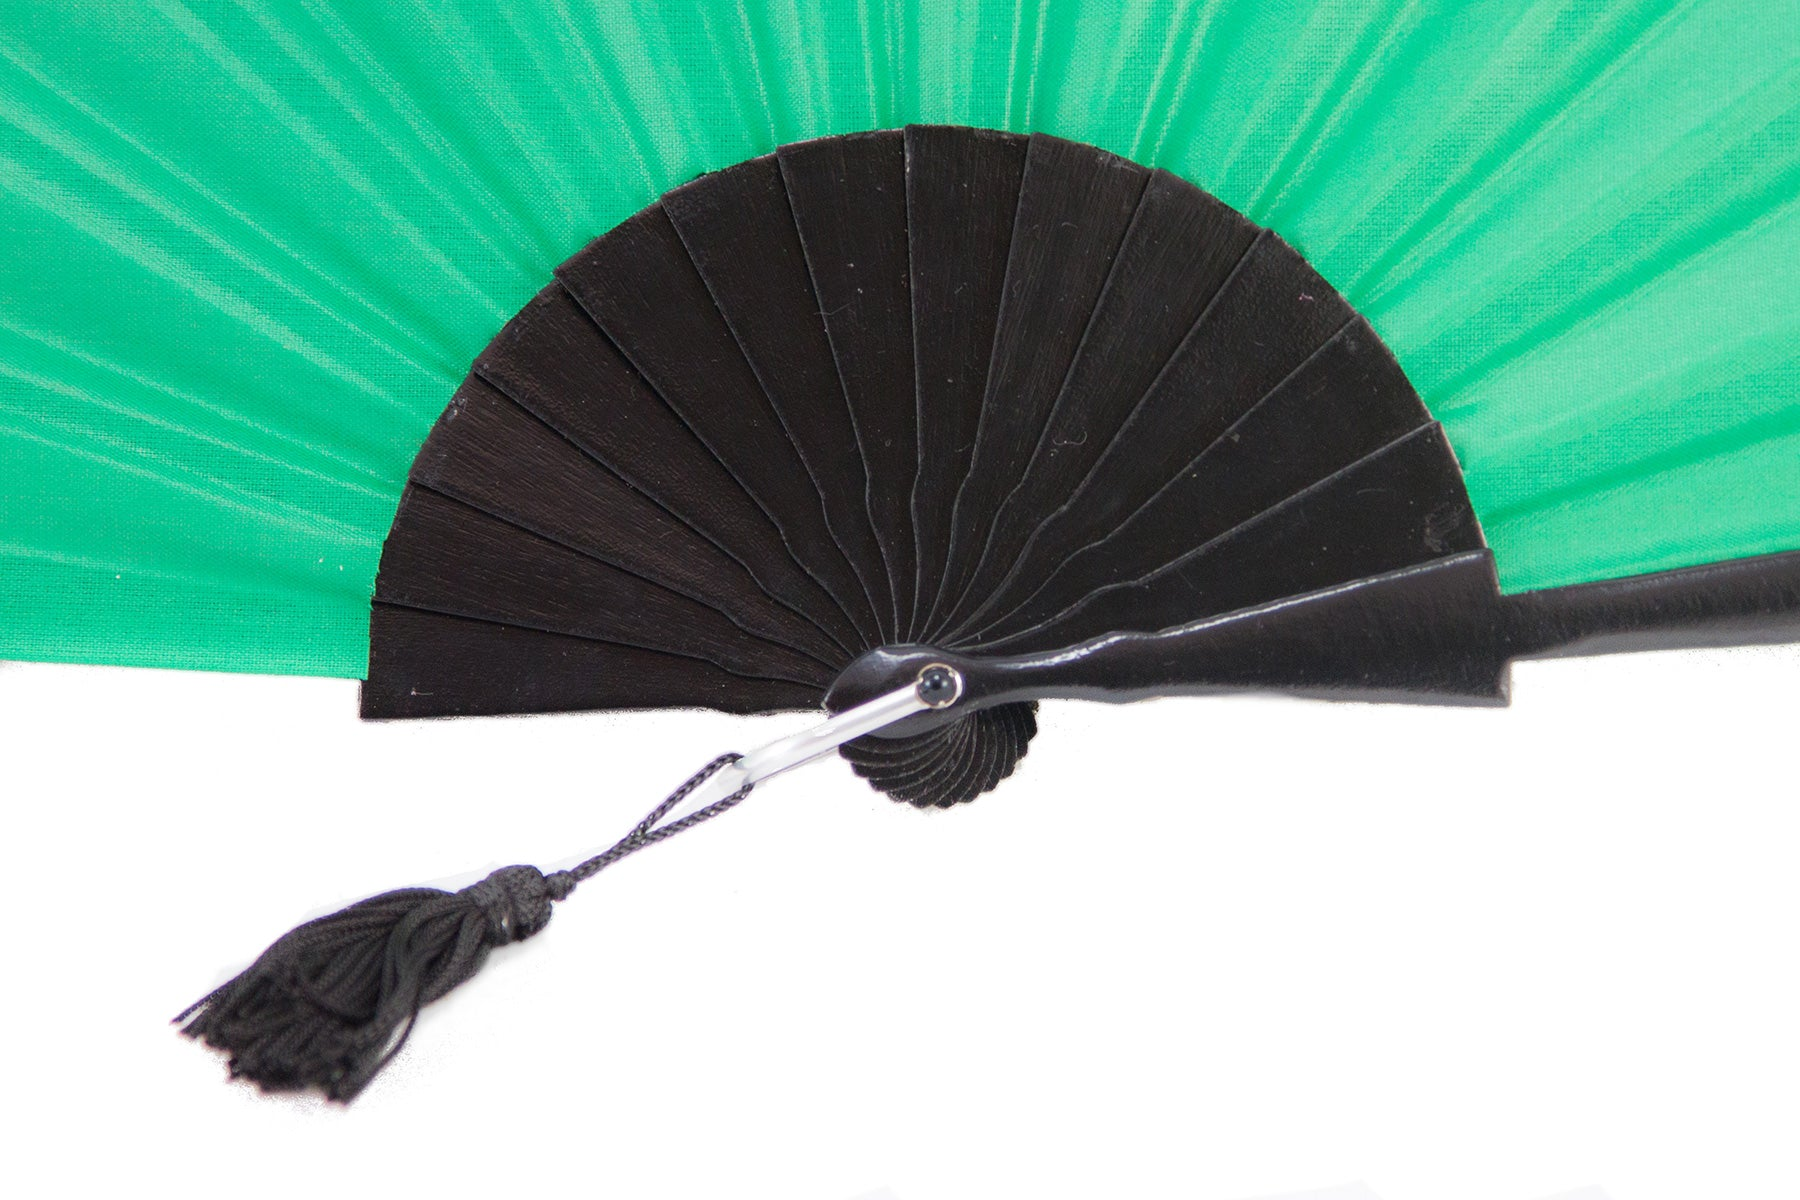 Rockcoco fans Green Glastonbury festival hand fan